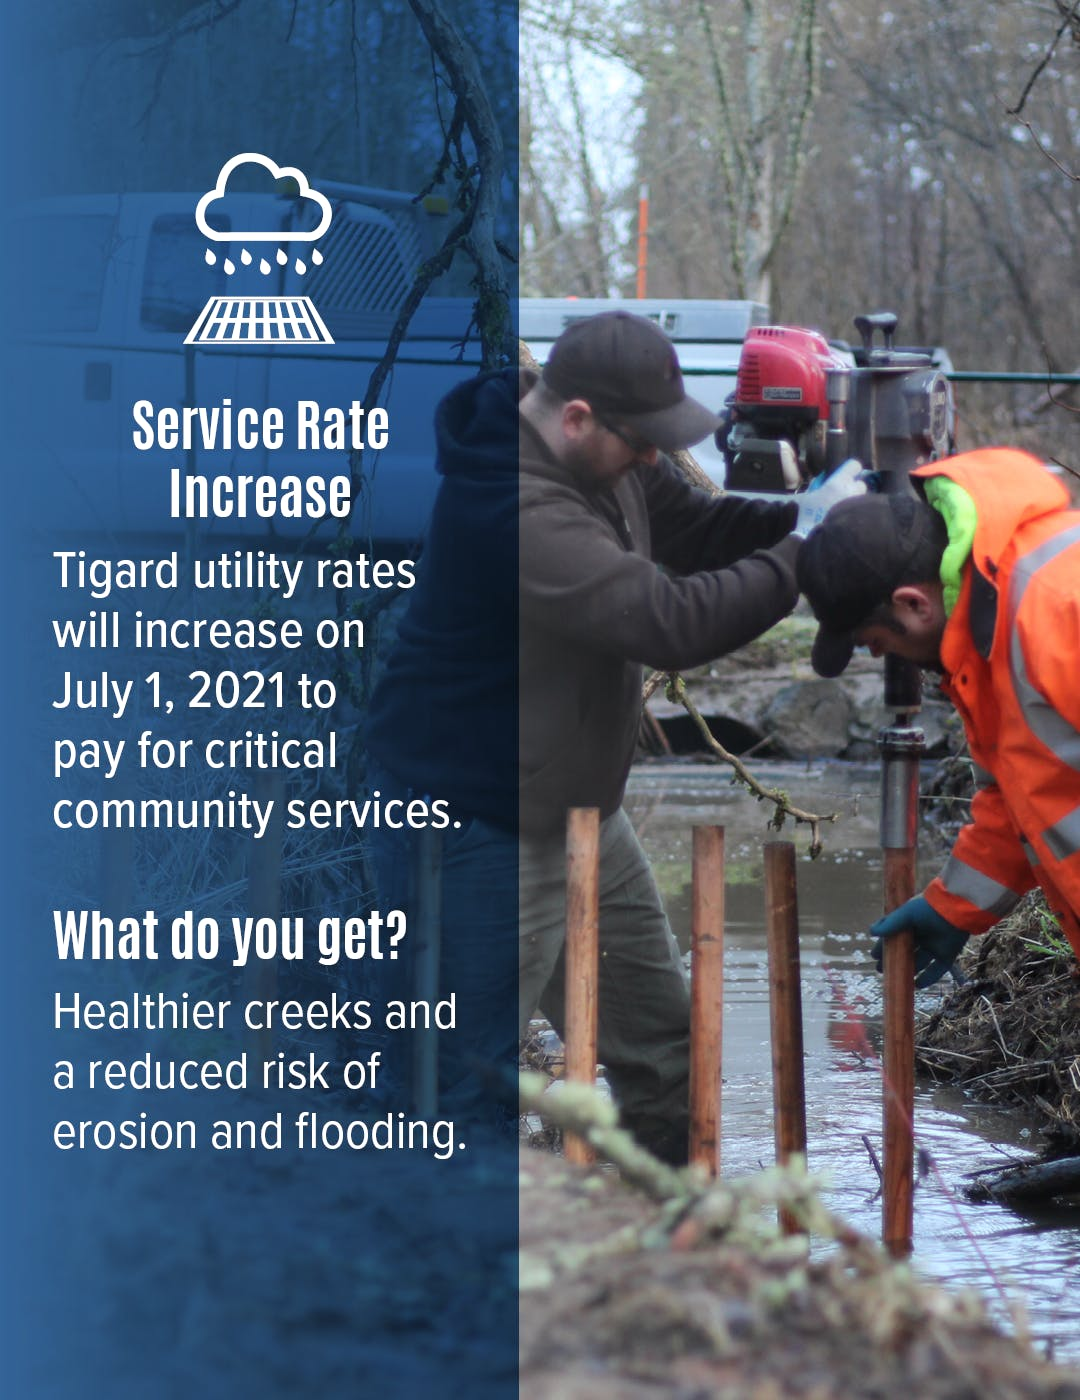 Services_Rate_Increase_Stormwater_July2021_shared_social_1080x1400.png